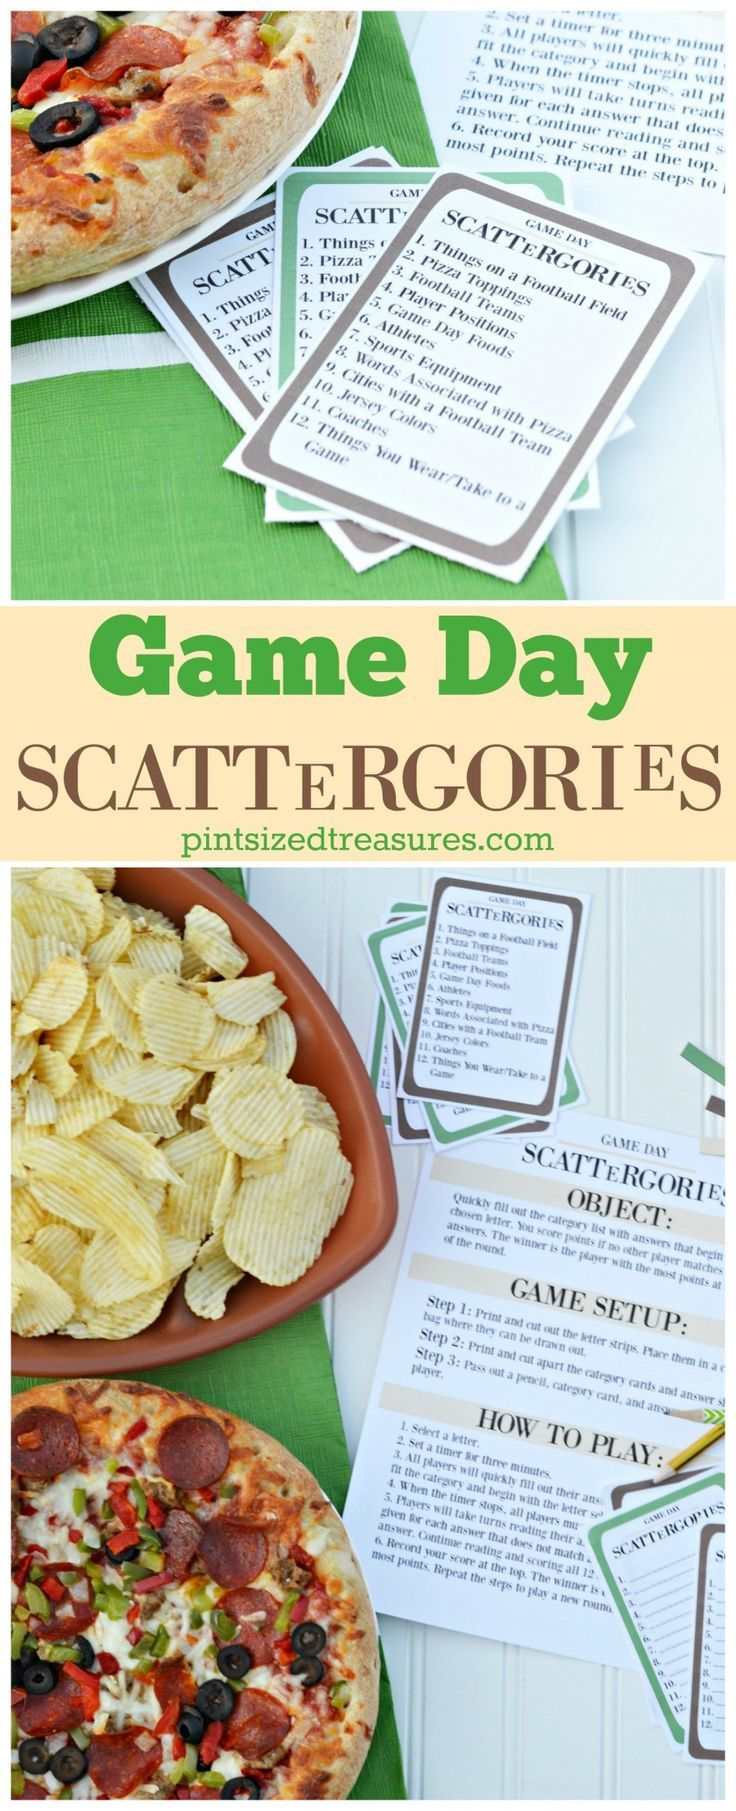 Printable Game Day Scattergories Football Games For Kids Scattergories Indoor Games For Adults